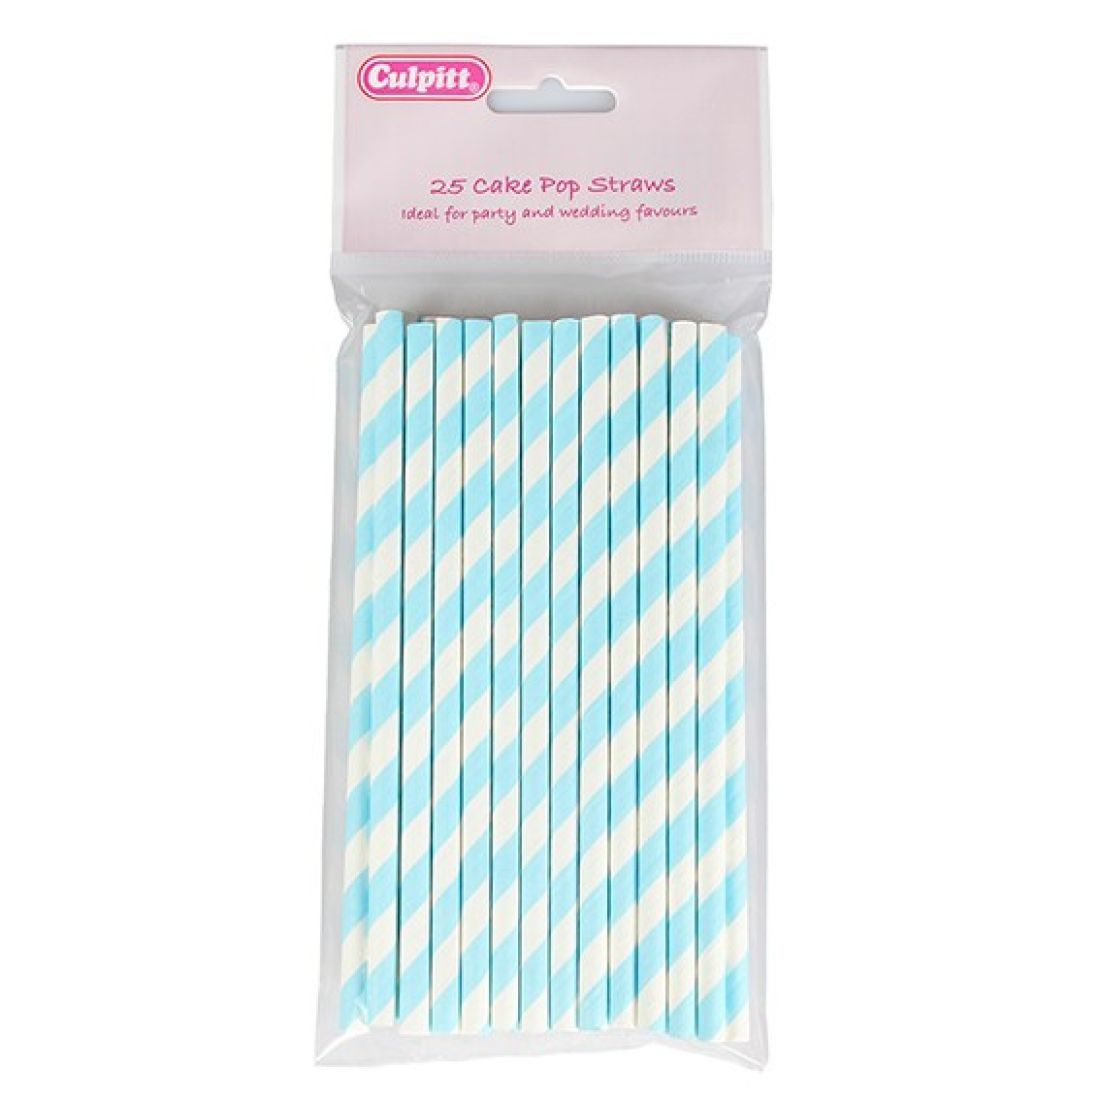 PME Quality Cake Pop Bags Sugarpaste Sugarcraft Decoration With Silver Ties 25pk